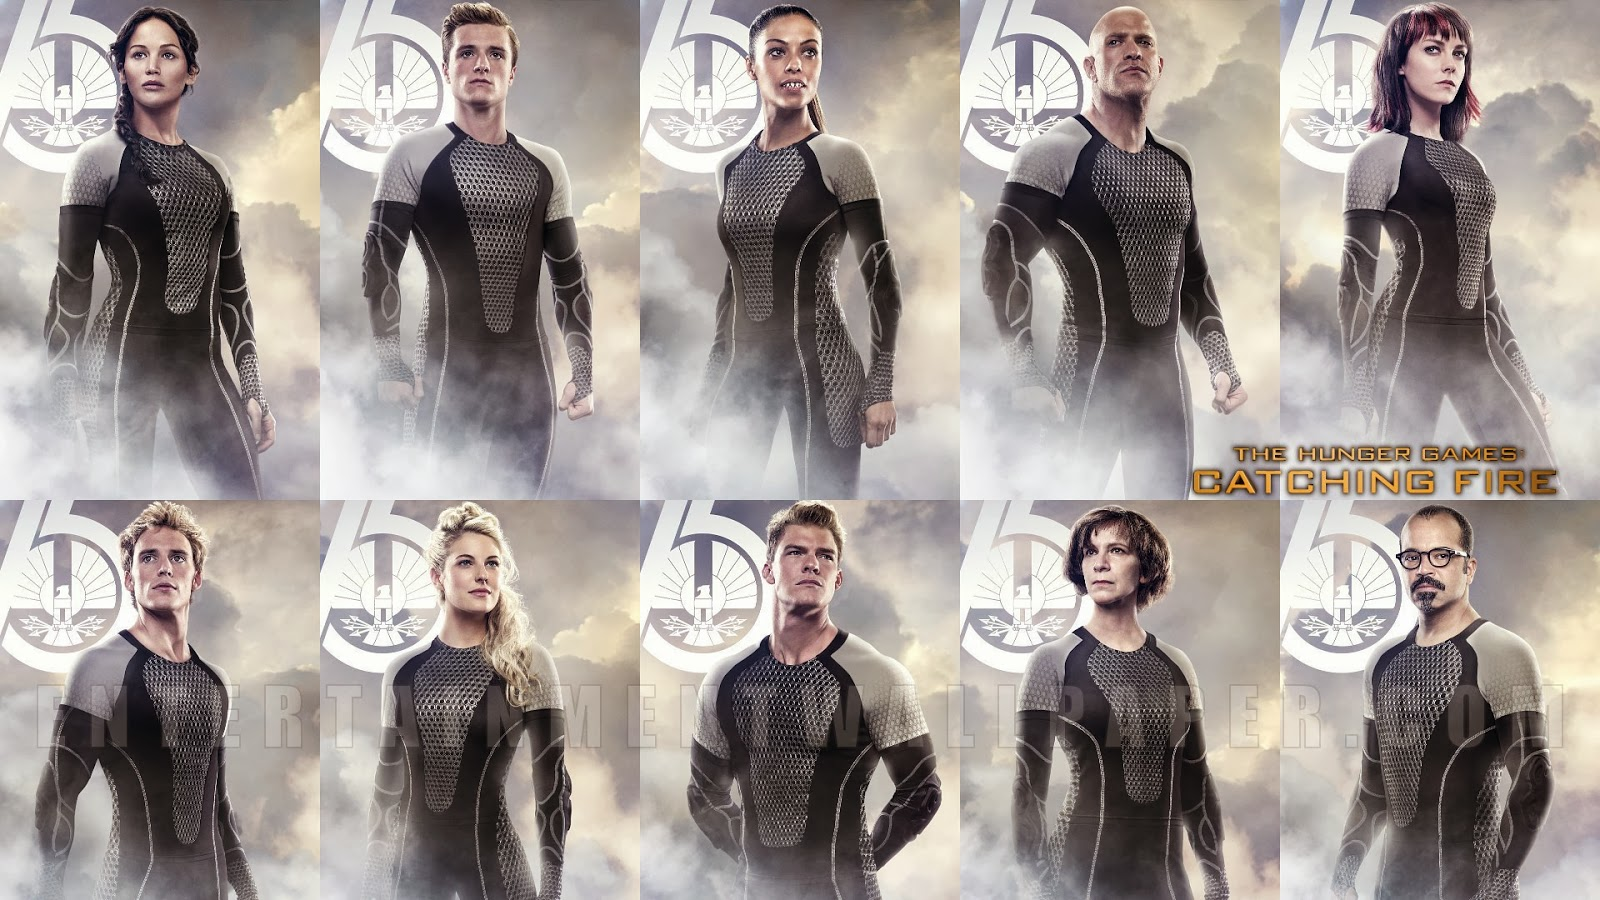 passion for movies hunger games catching fire shapes and passion for movies